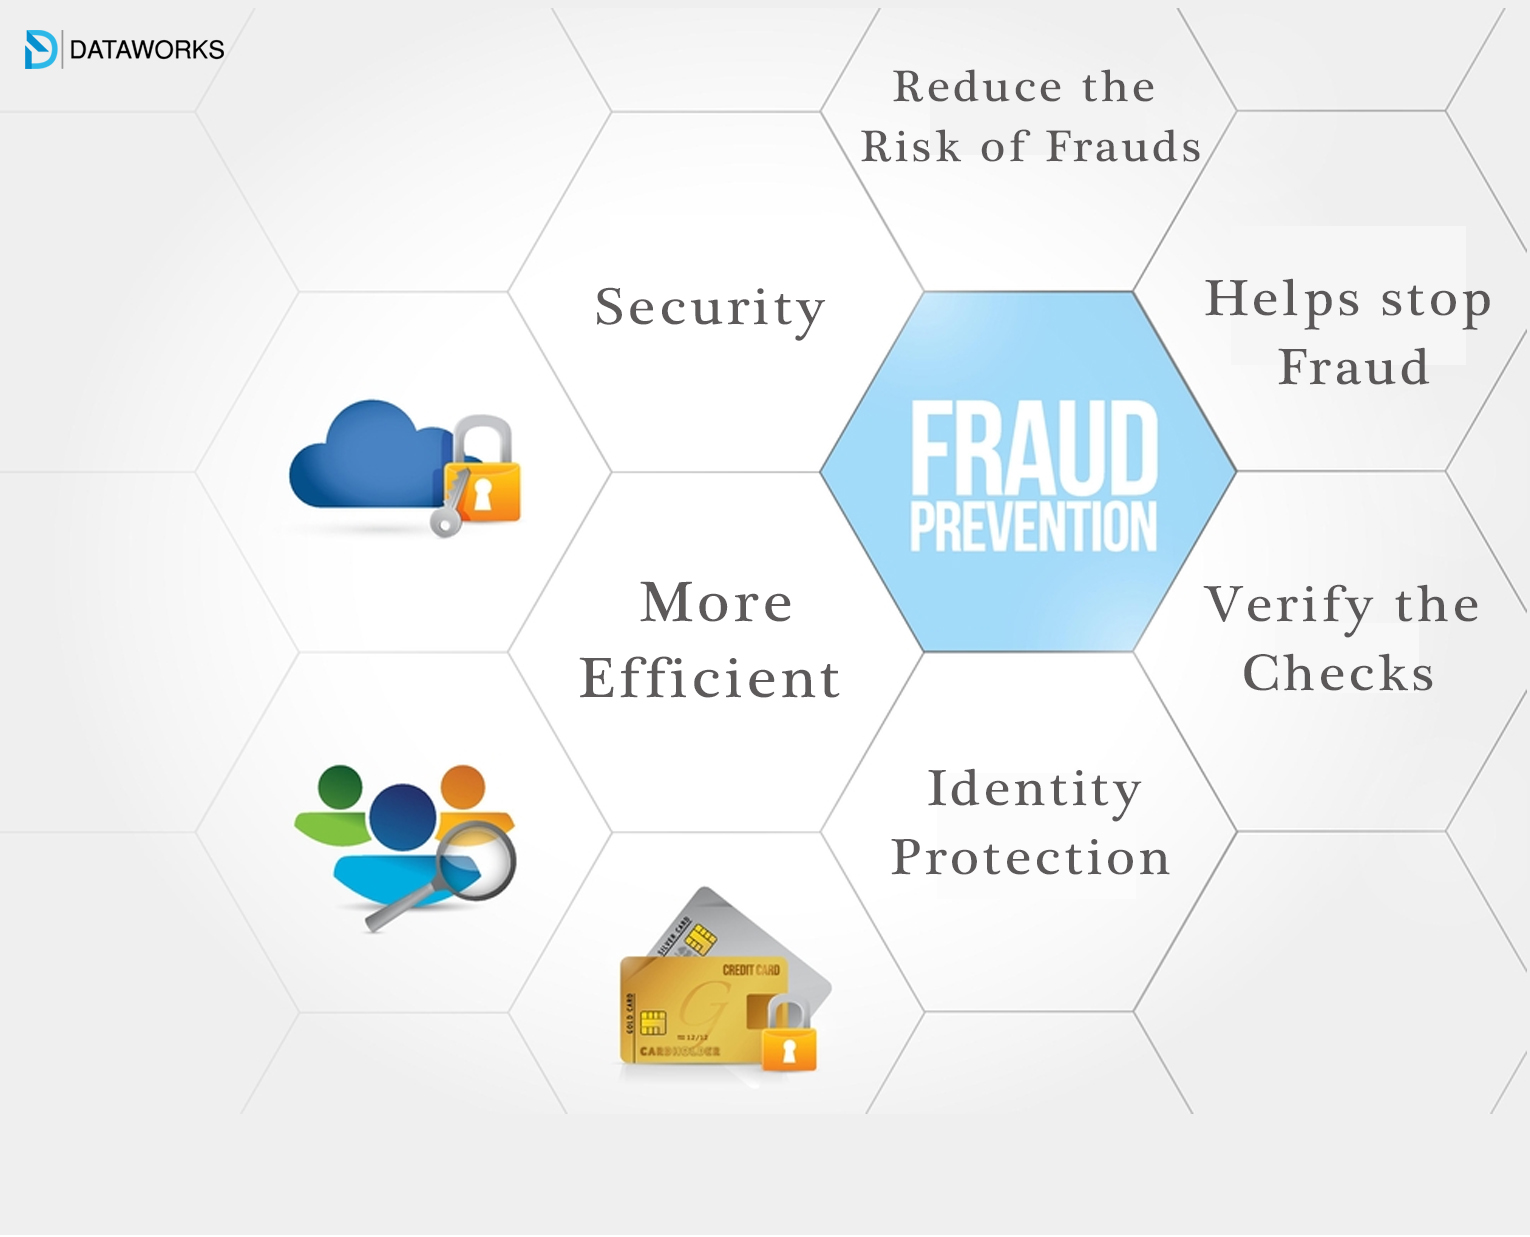 Can outsourced payment processing services help prevent fraud?